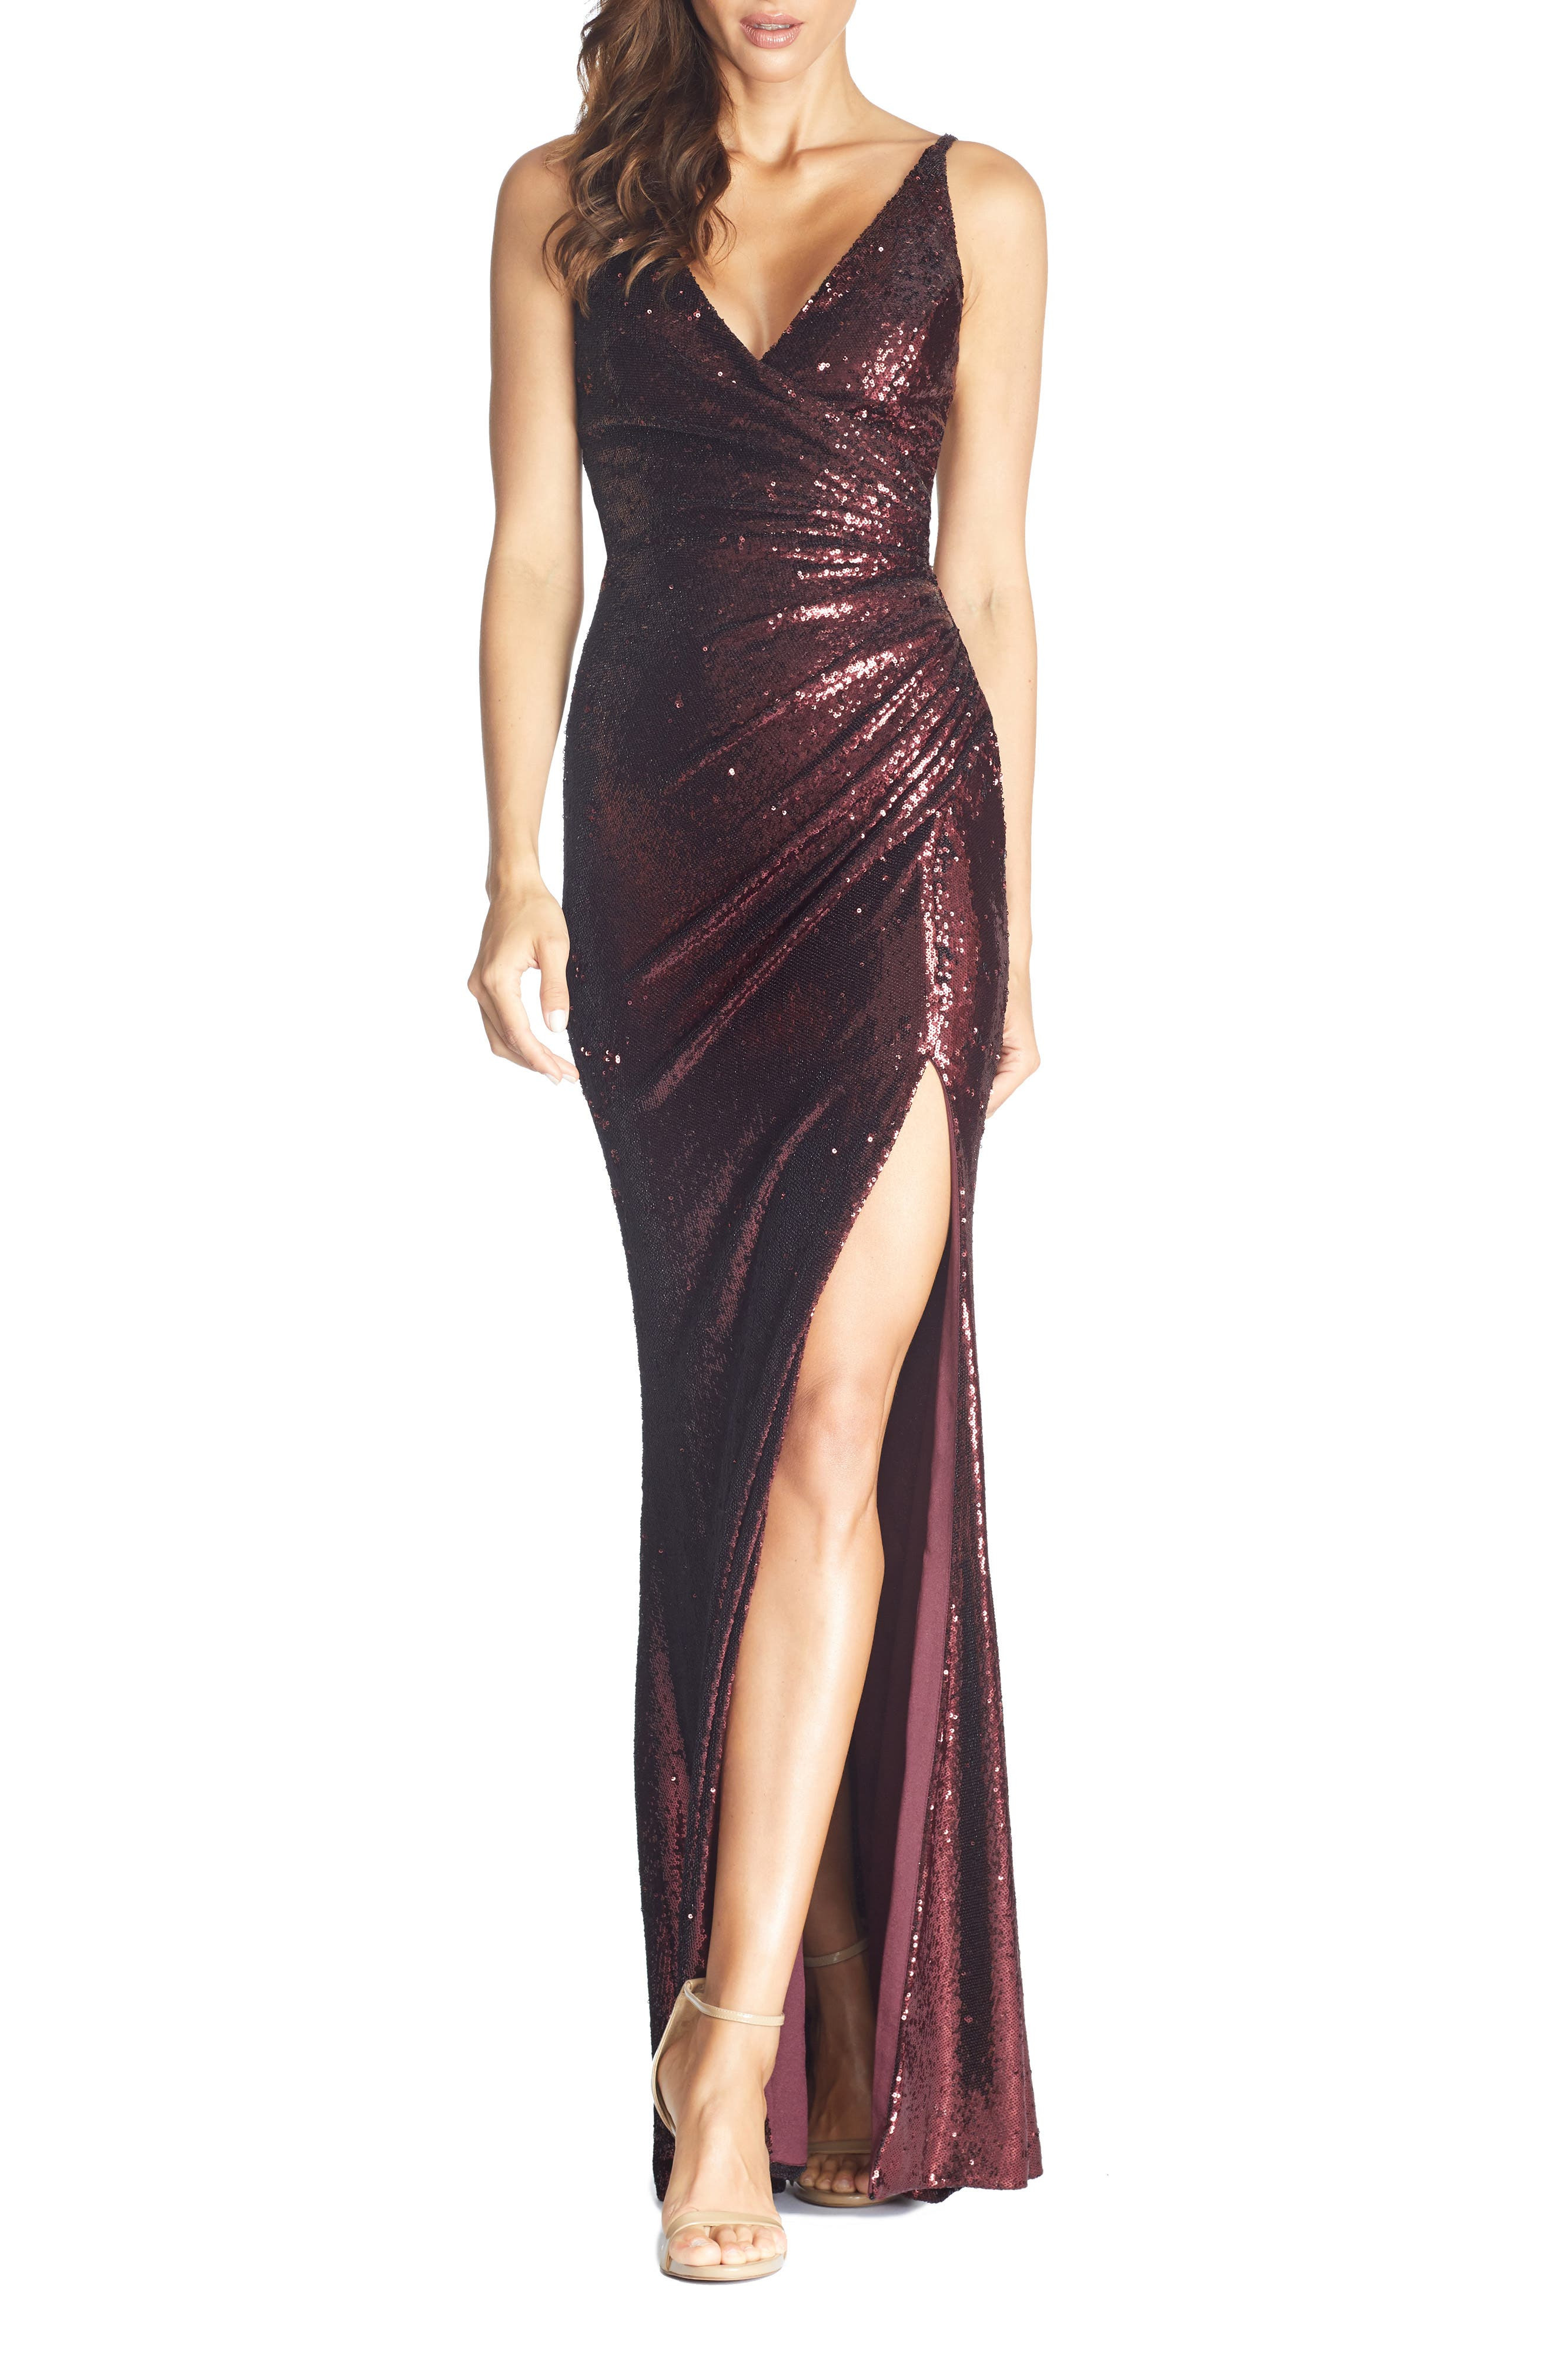 70s Prom, Formal, Evening, Party Dresses Womens Dress The Population Jordan Ruched Mermaid Gown Size X-Large - Red $348.00 AT vintagedancer.com